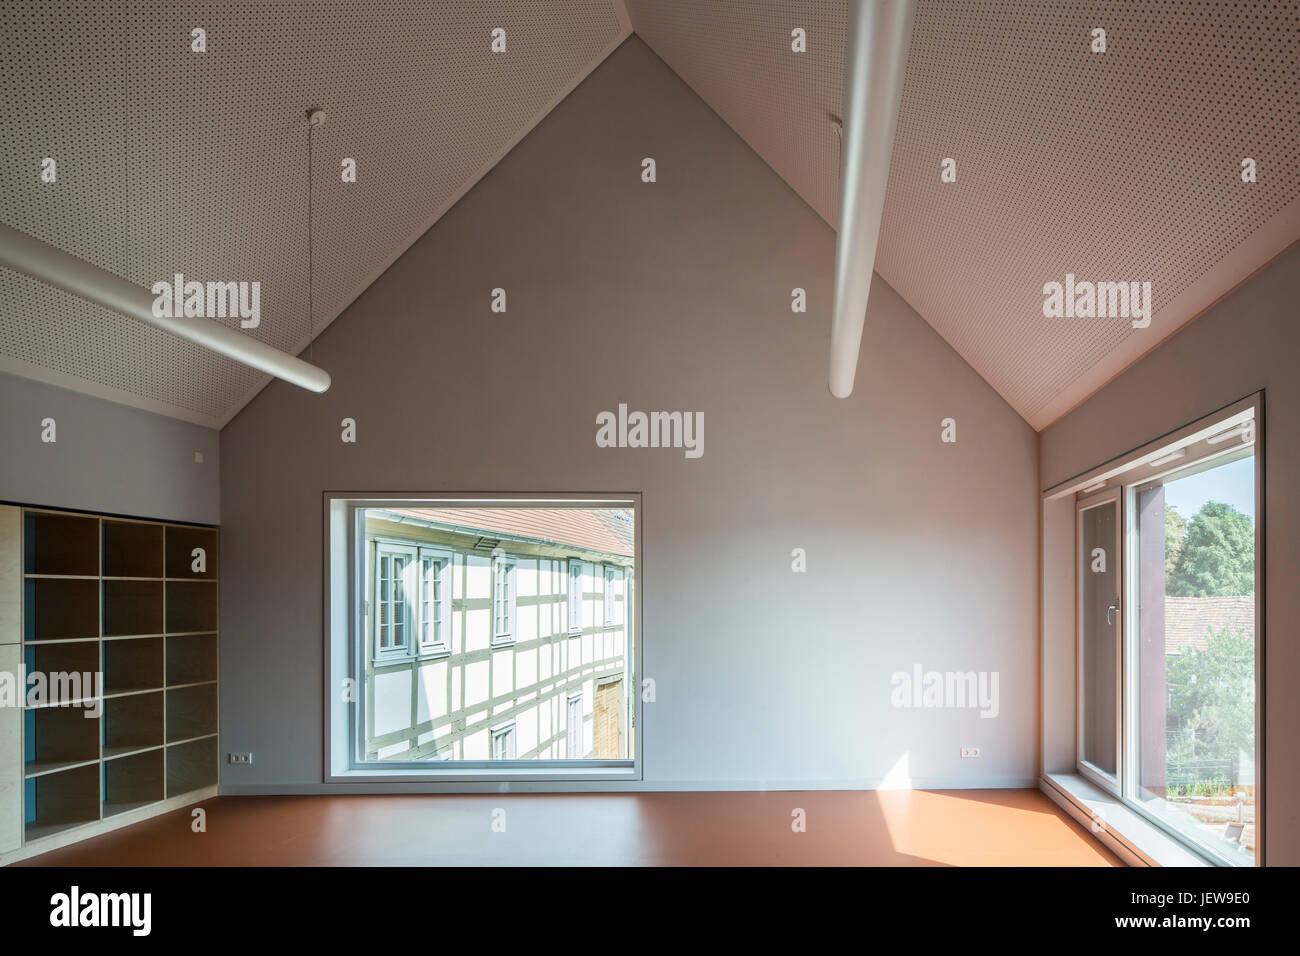 Group room with pitched ceiling and large fenestration. Kindergarten Mitte Kyritz, Kyritz, Germany. Architect: kleyer - Stock Image